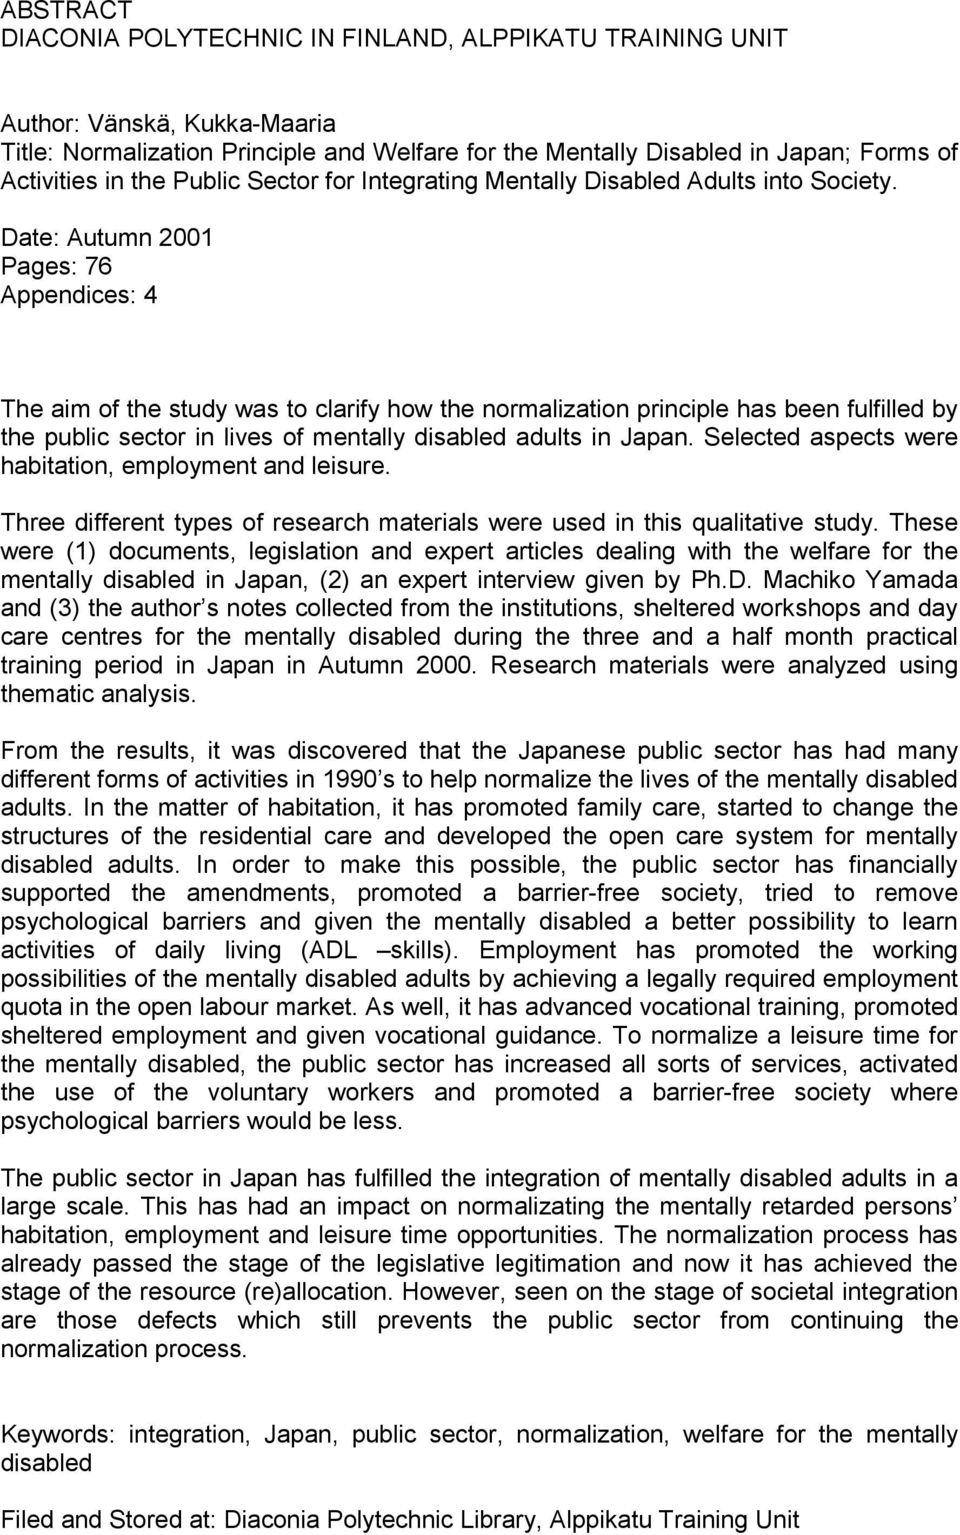 Date: Autumn 2001 Pages: 76 Appendices: 4 The aim of the study was to clarify how the normalization principle has been fulfilled by the public sector in lives of mentally disabled adults in Japan.